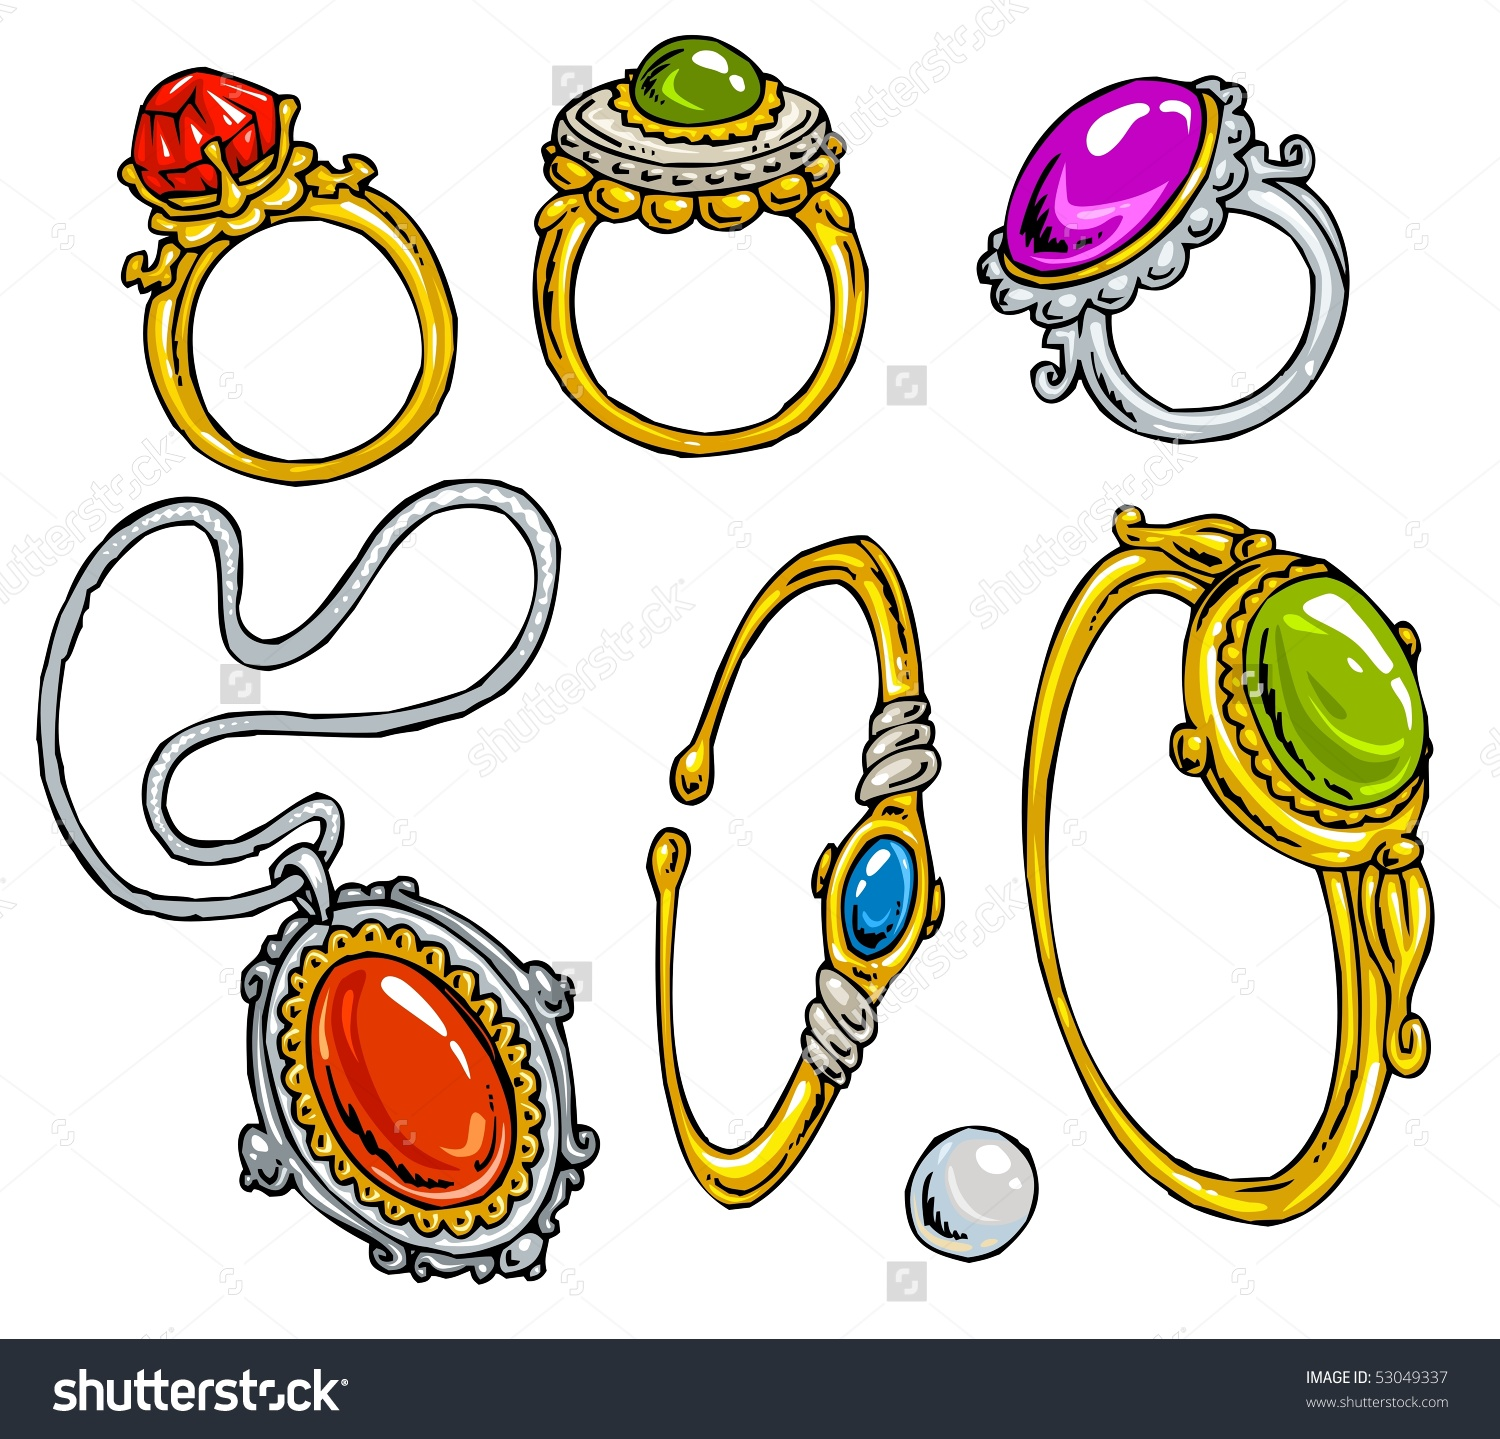 Necklace clipart cartoon Searched jewelry heart jewelry Golden